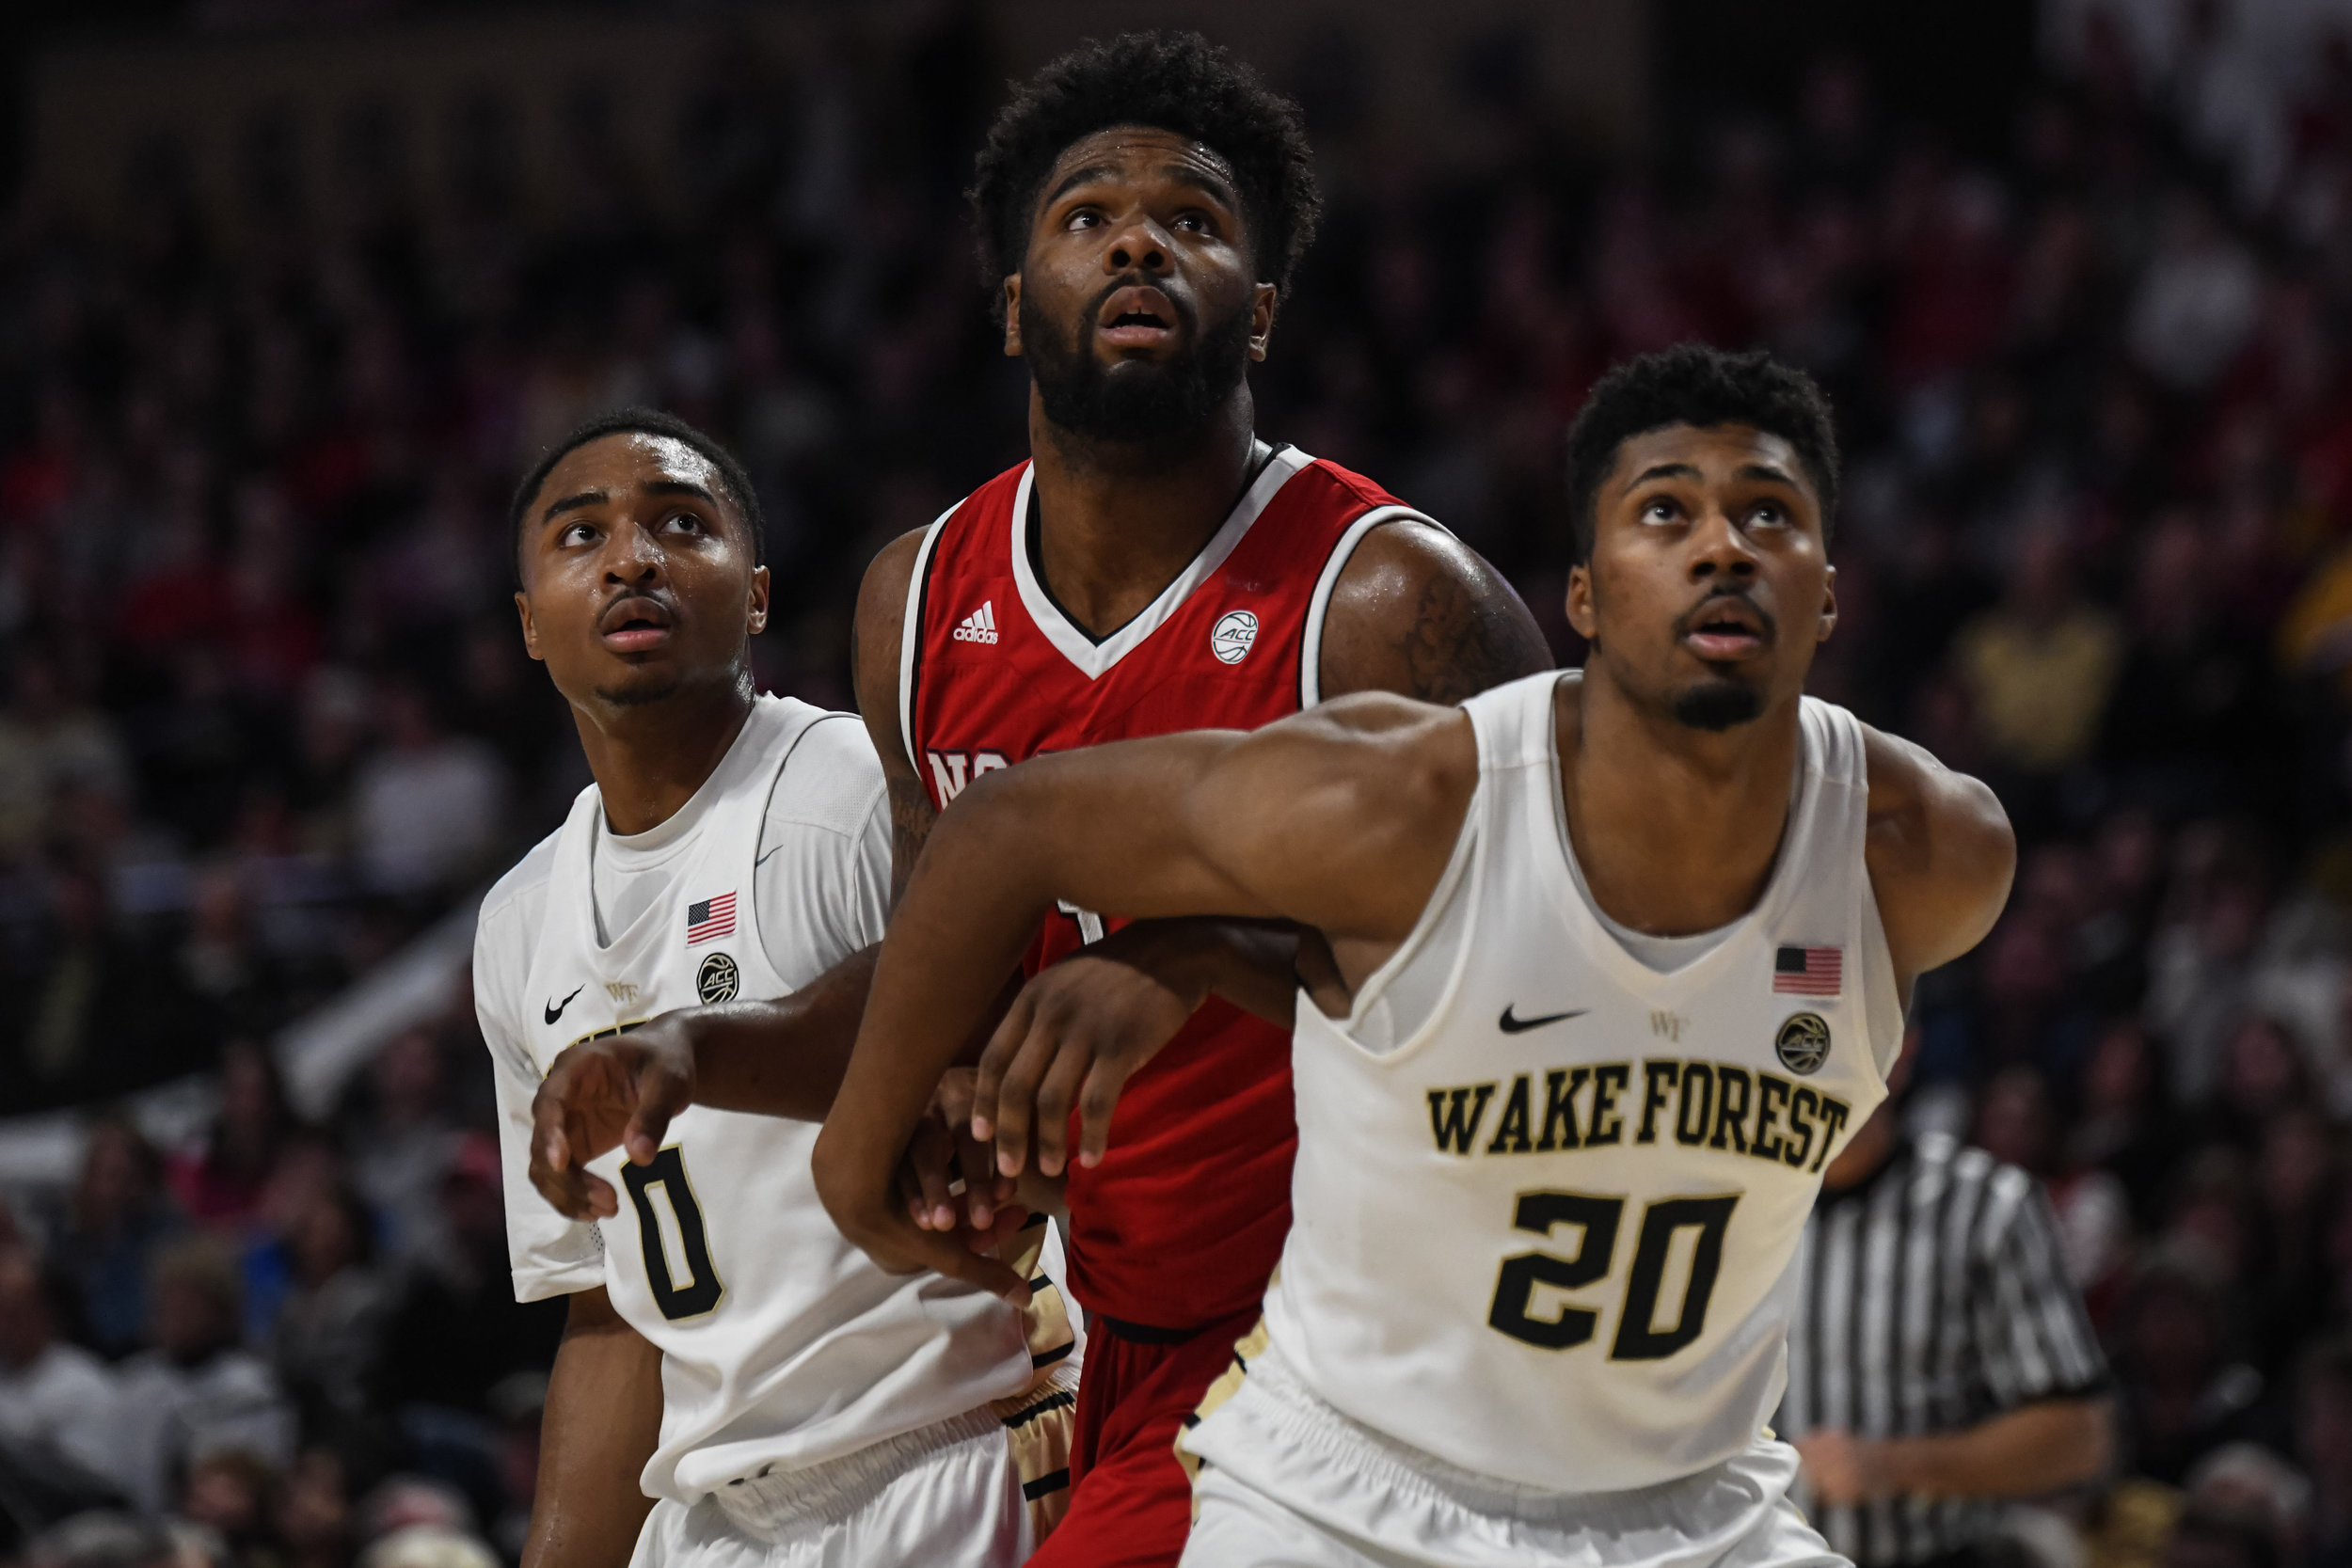 NC State at Wake Forest36.jpg